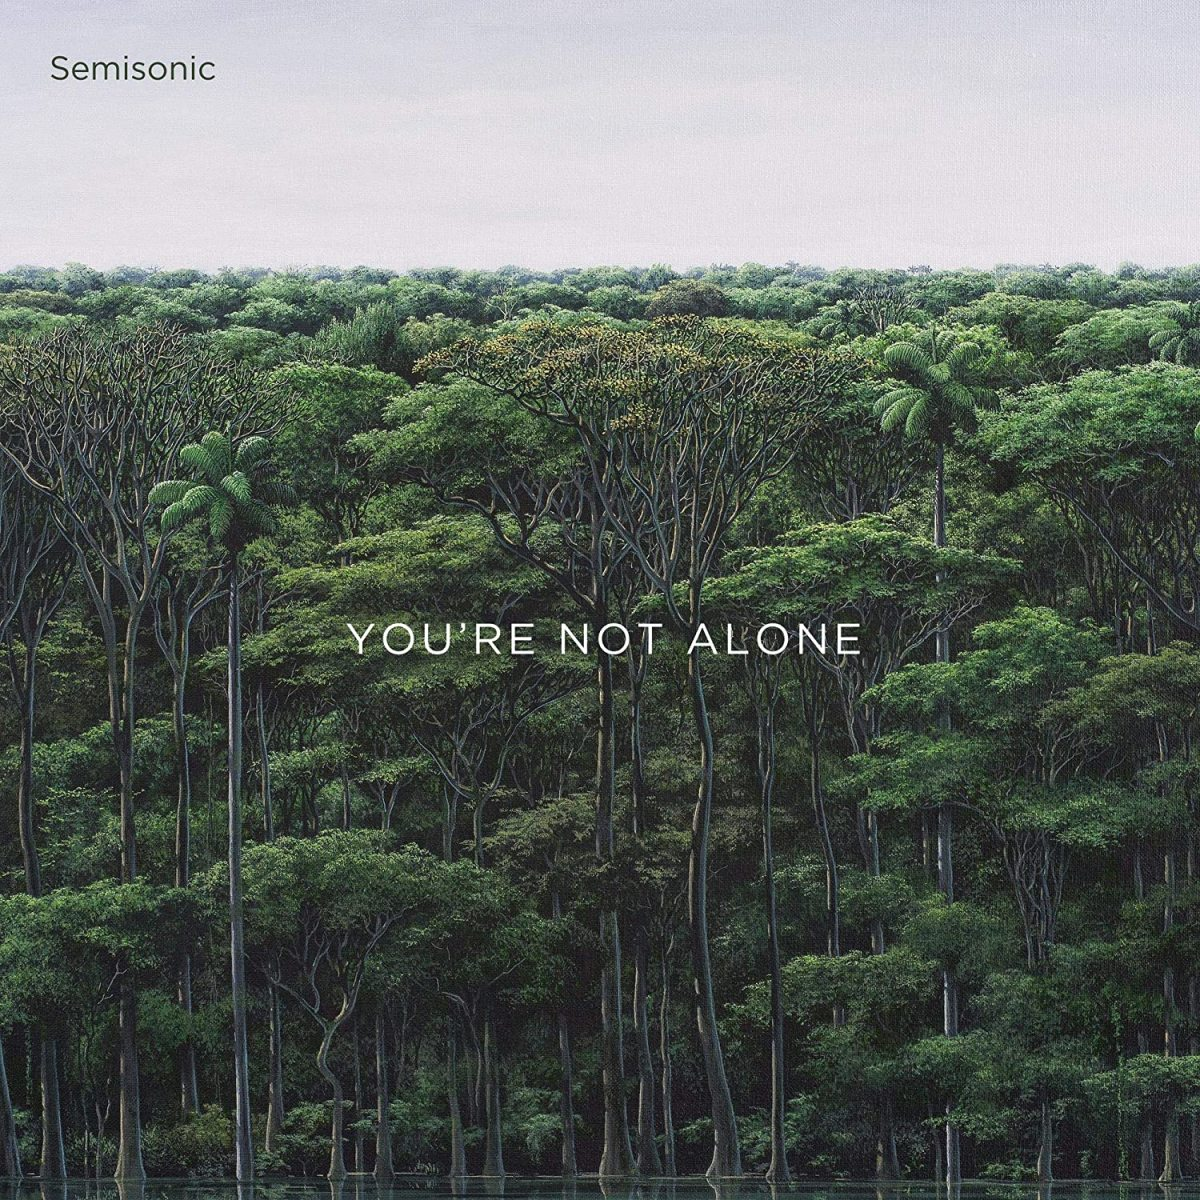 semisonic-no alone